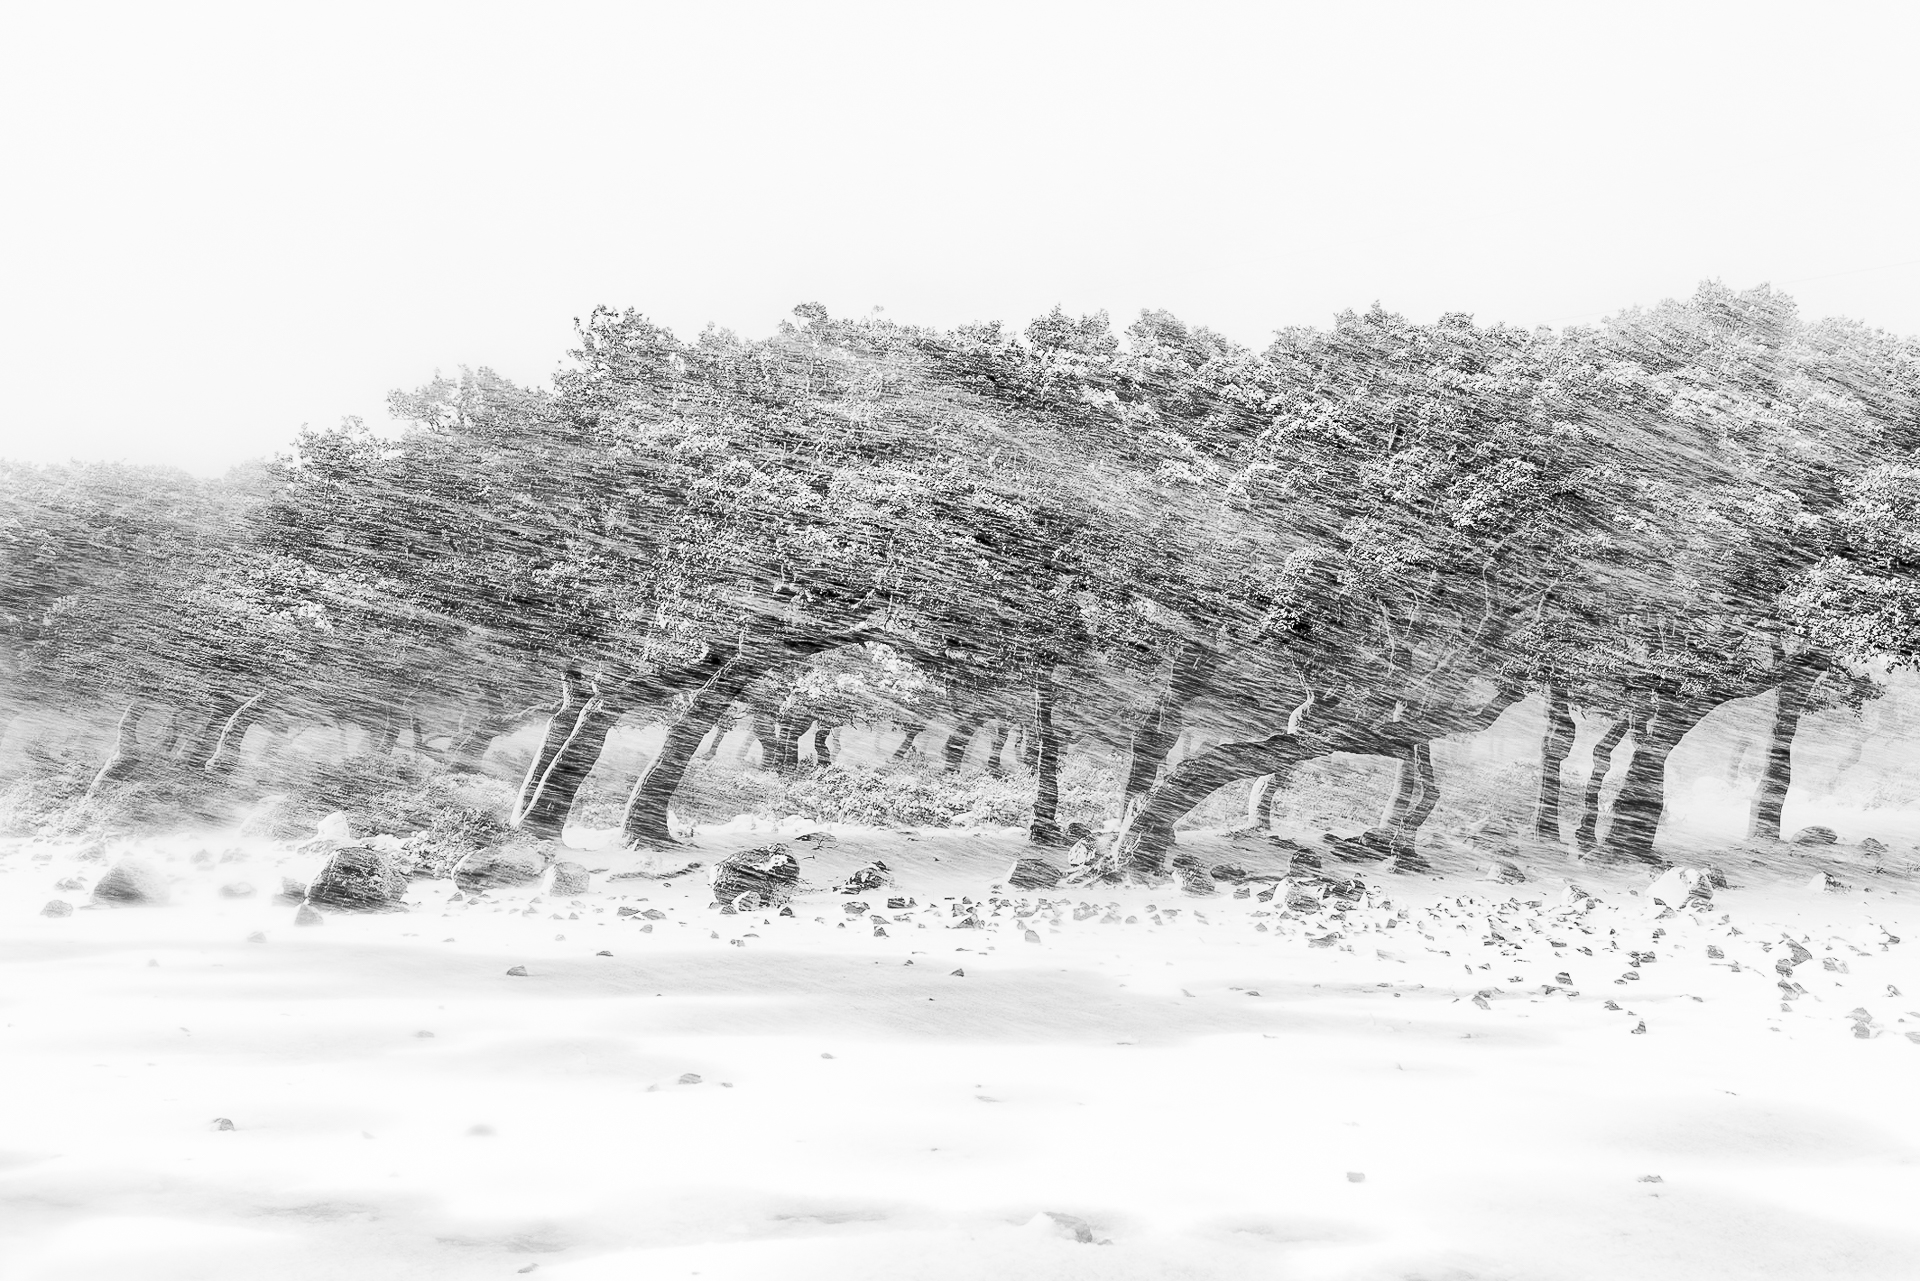 Cork forest in a blizzard